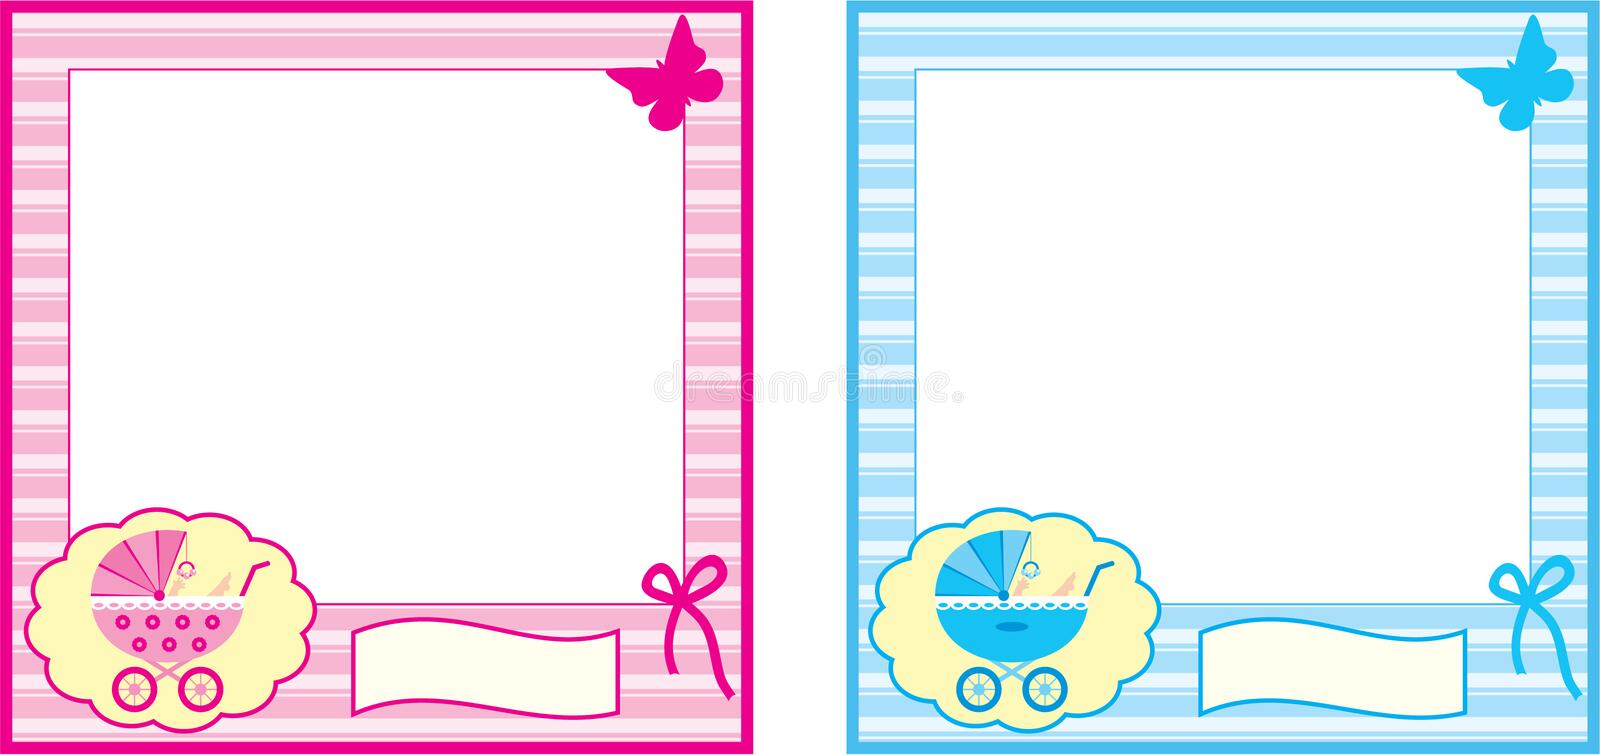 Baby photo frame. vector illustration